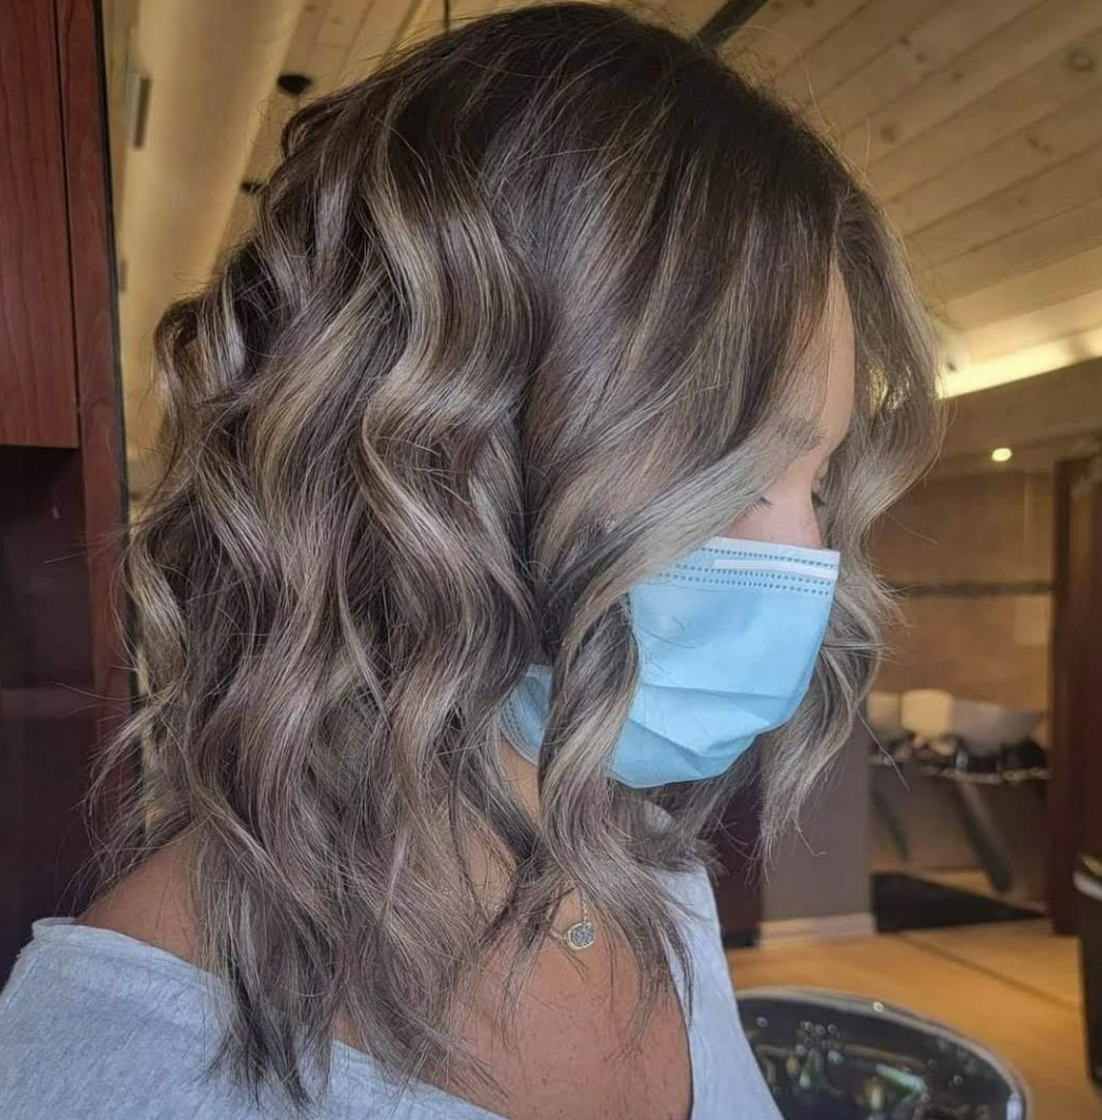 Inspirational Fall Hair Colors For A New Look